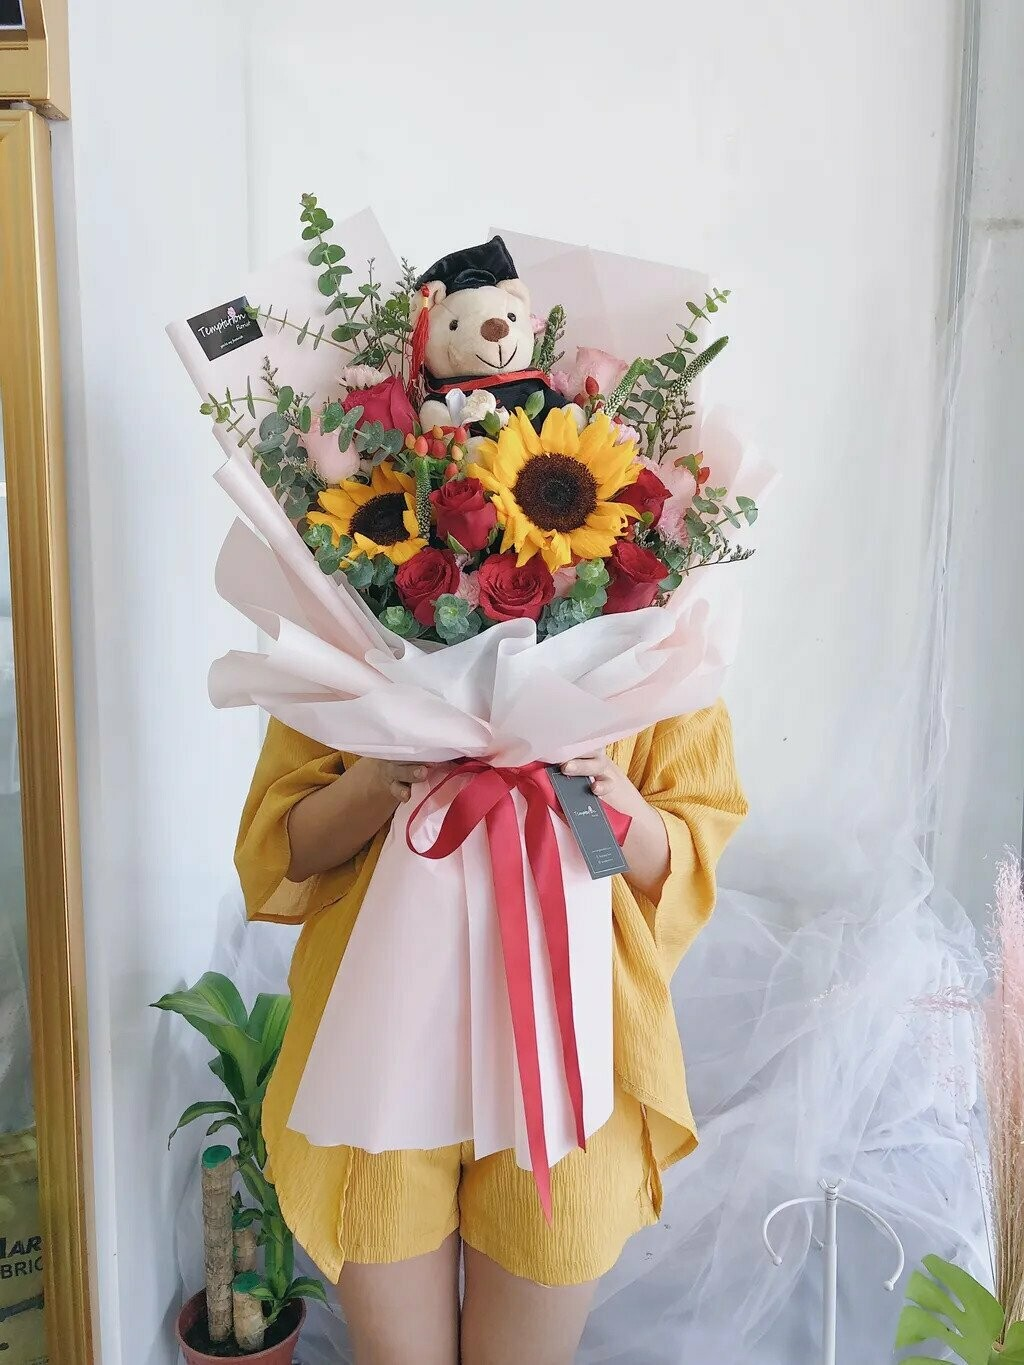 Beary Delight (By: Temptation Florist from Seremban)